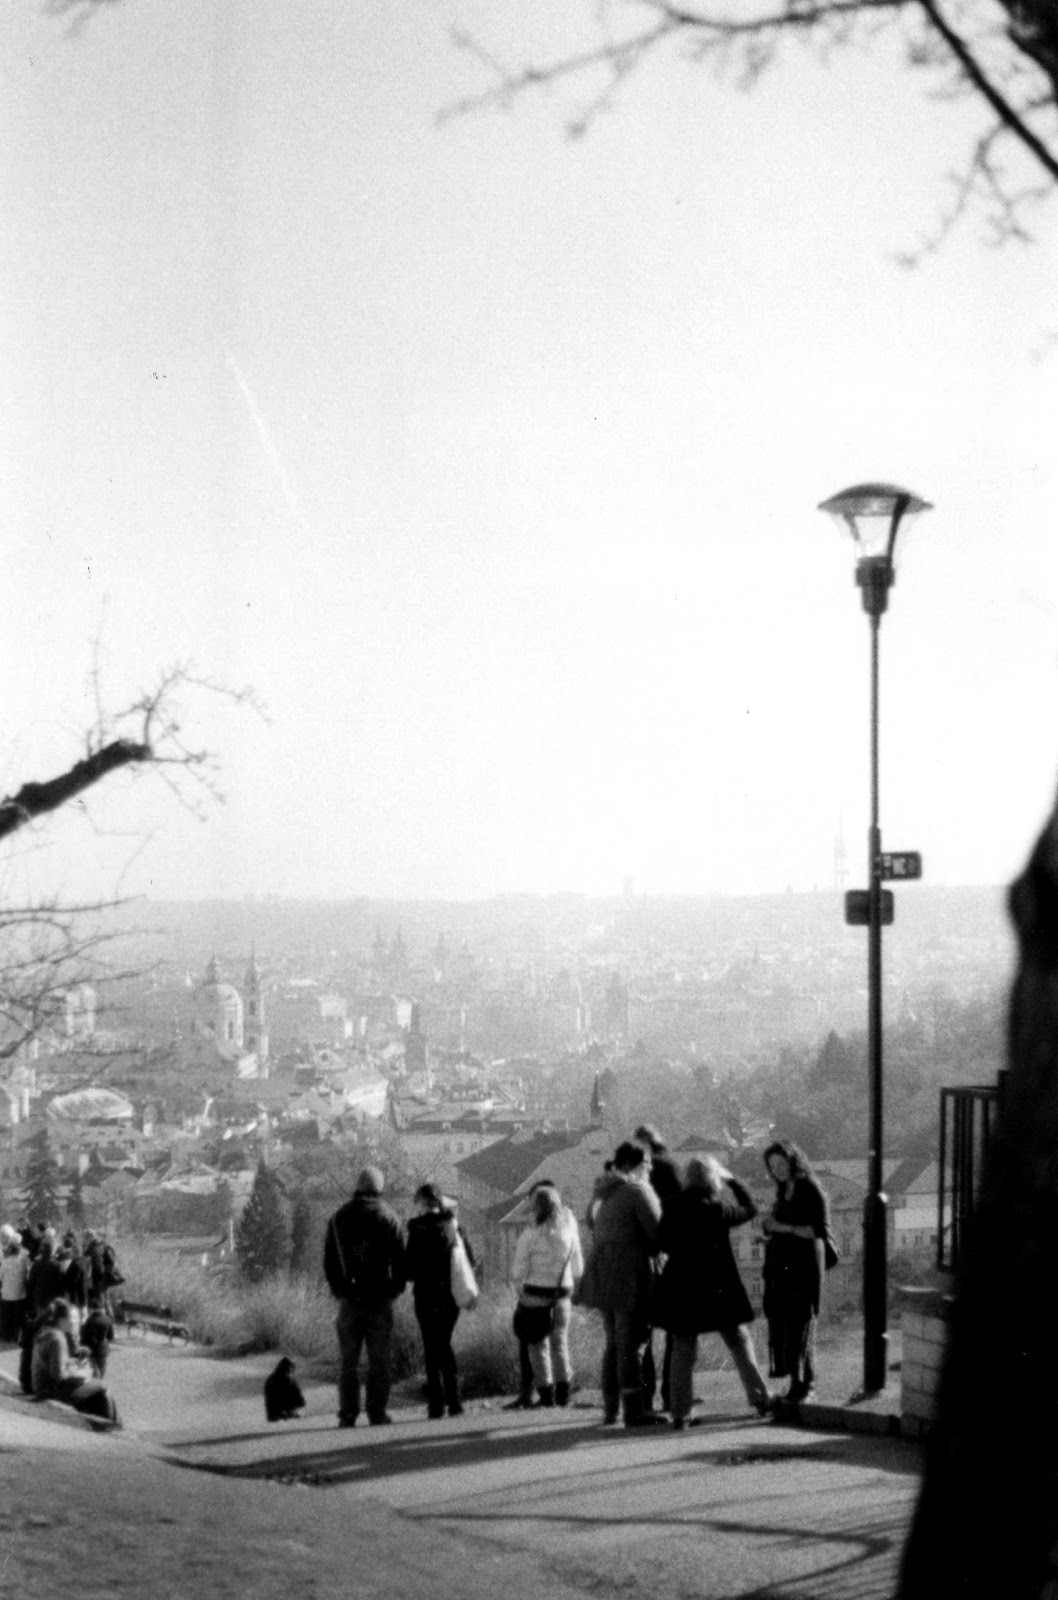 Prague black and white film photography, Czech republic, travel, photography, vintage, experinces.